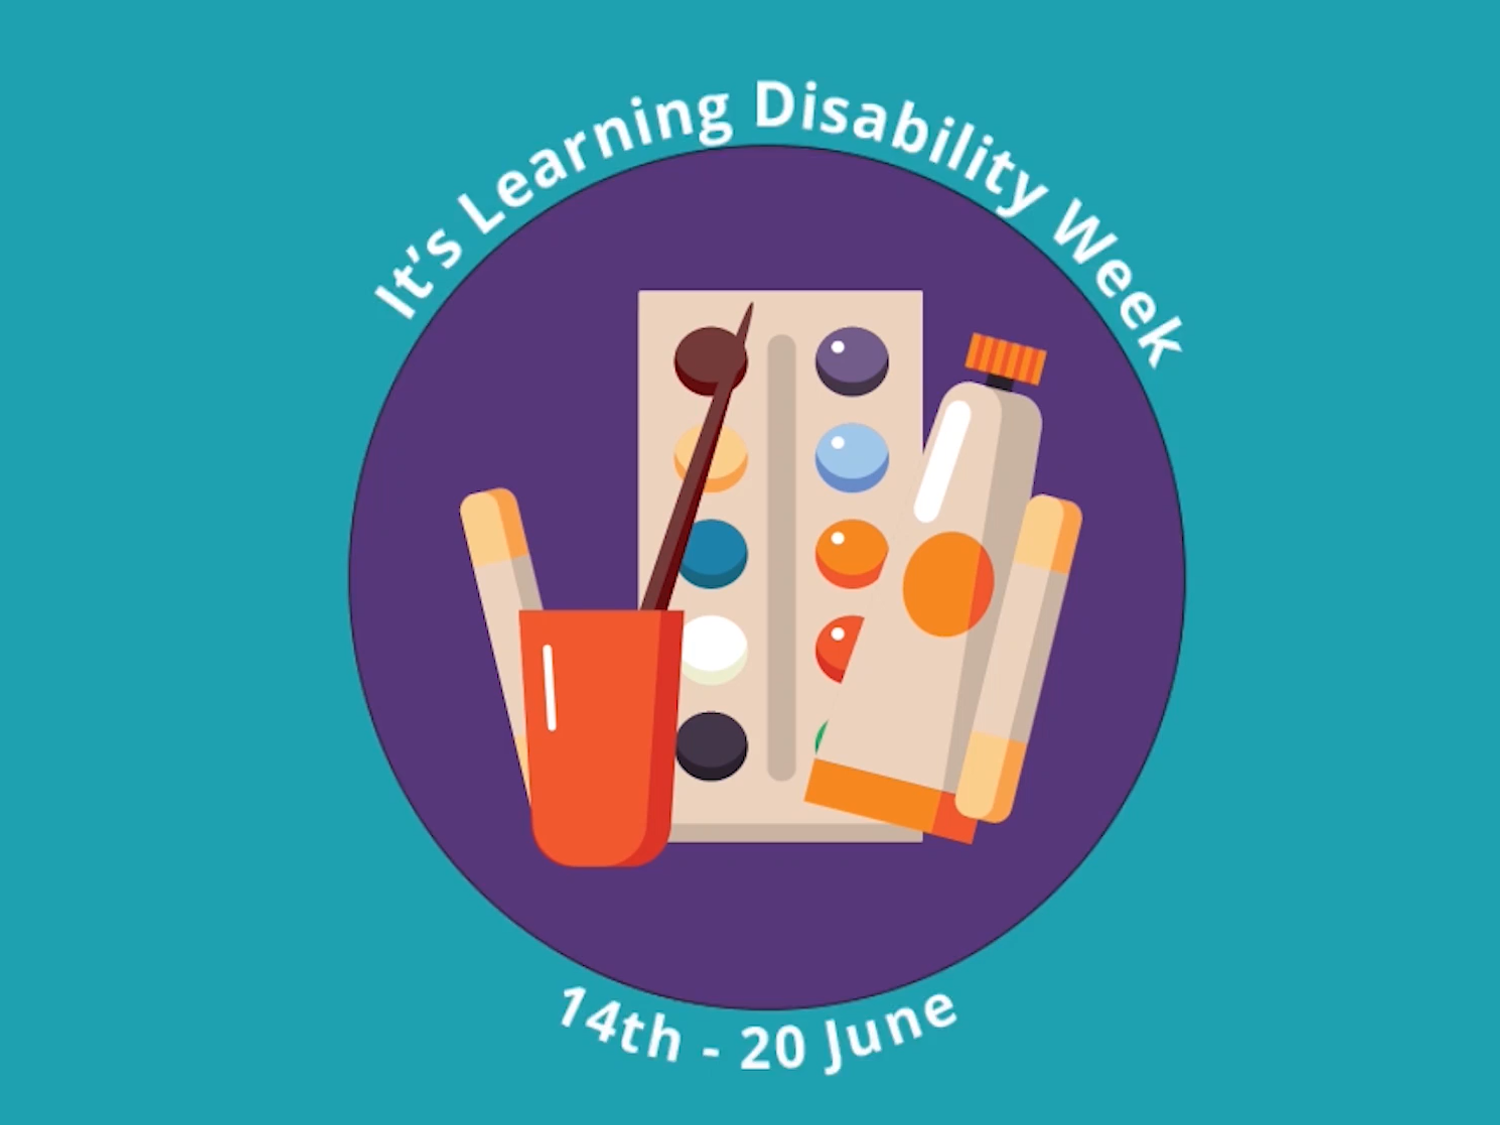 Learning Disabilities Week 2021 at Voyage Care